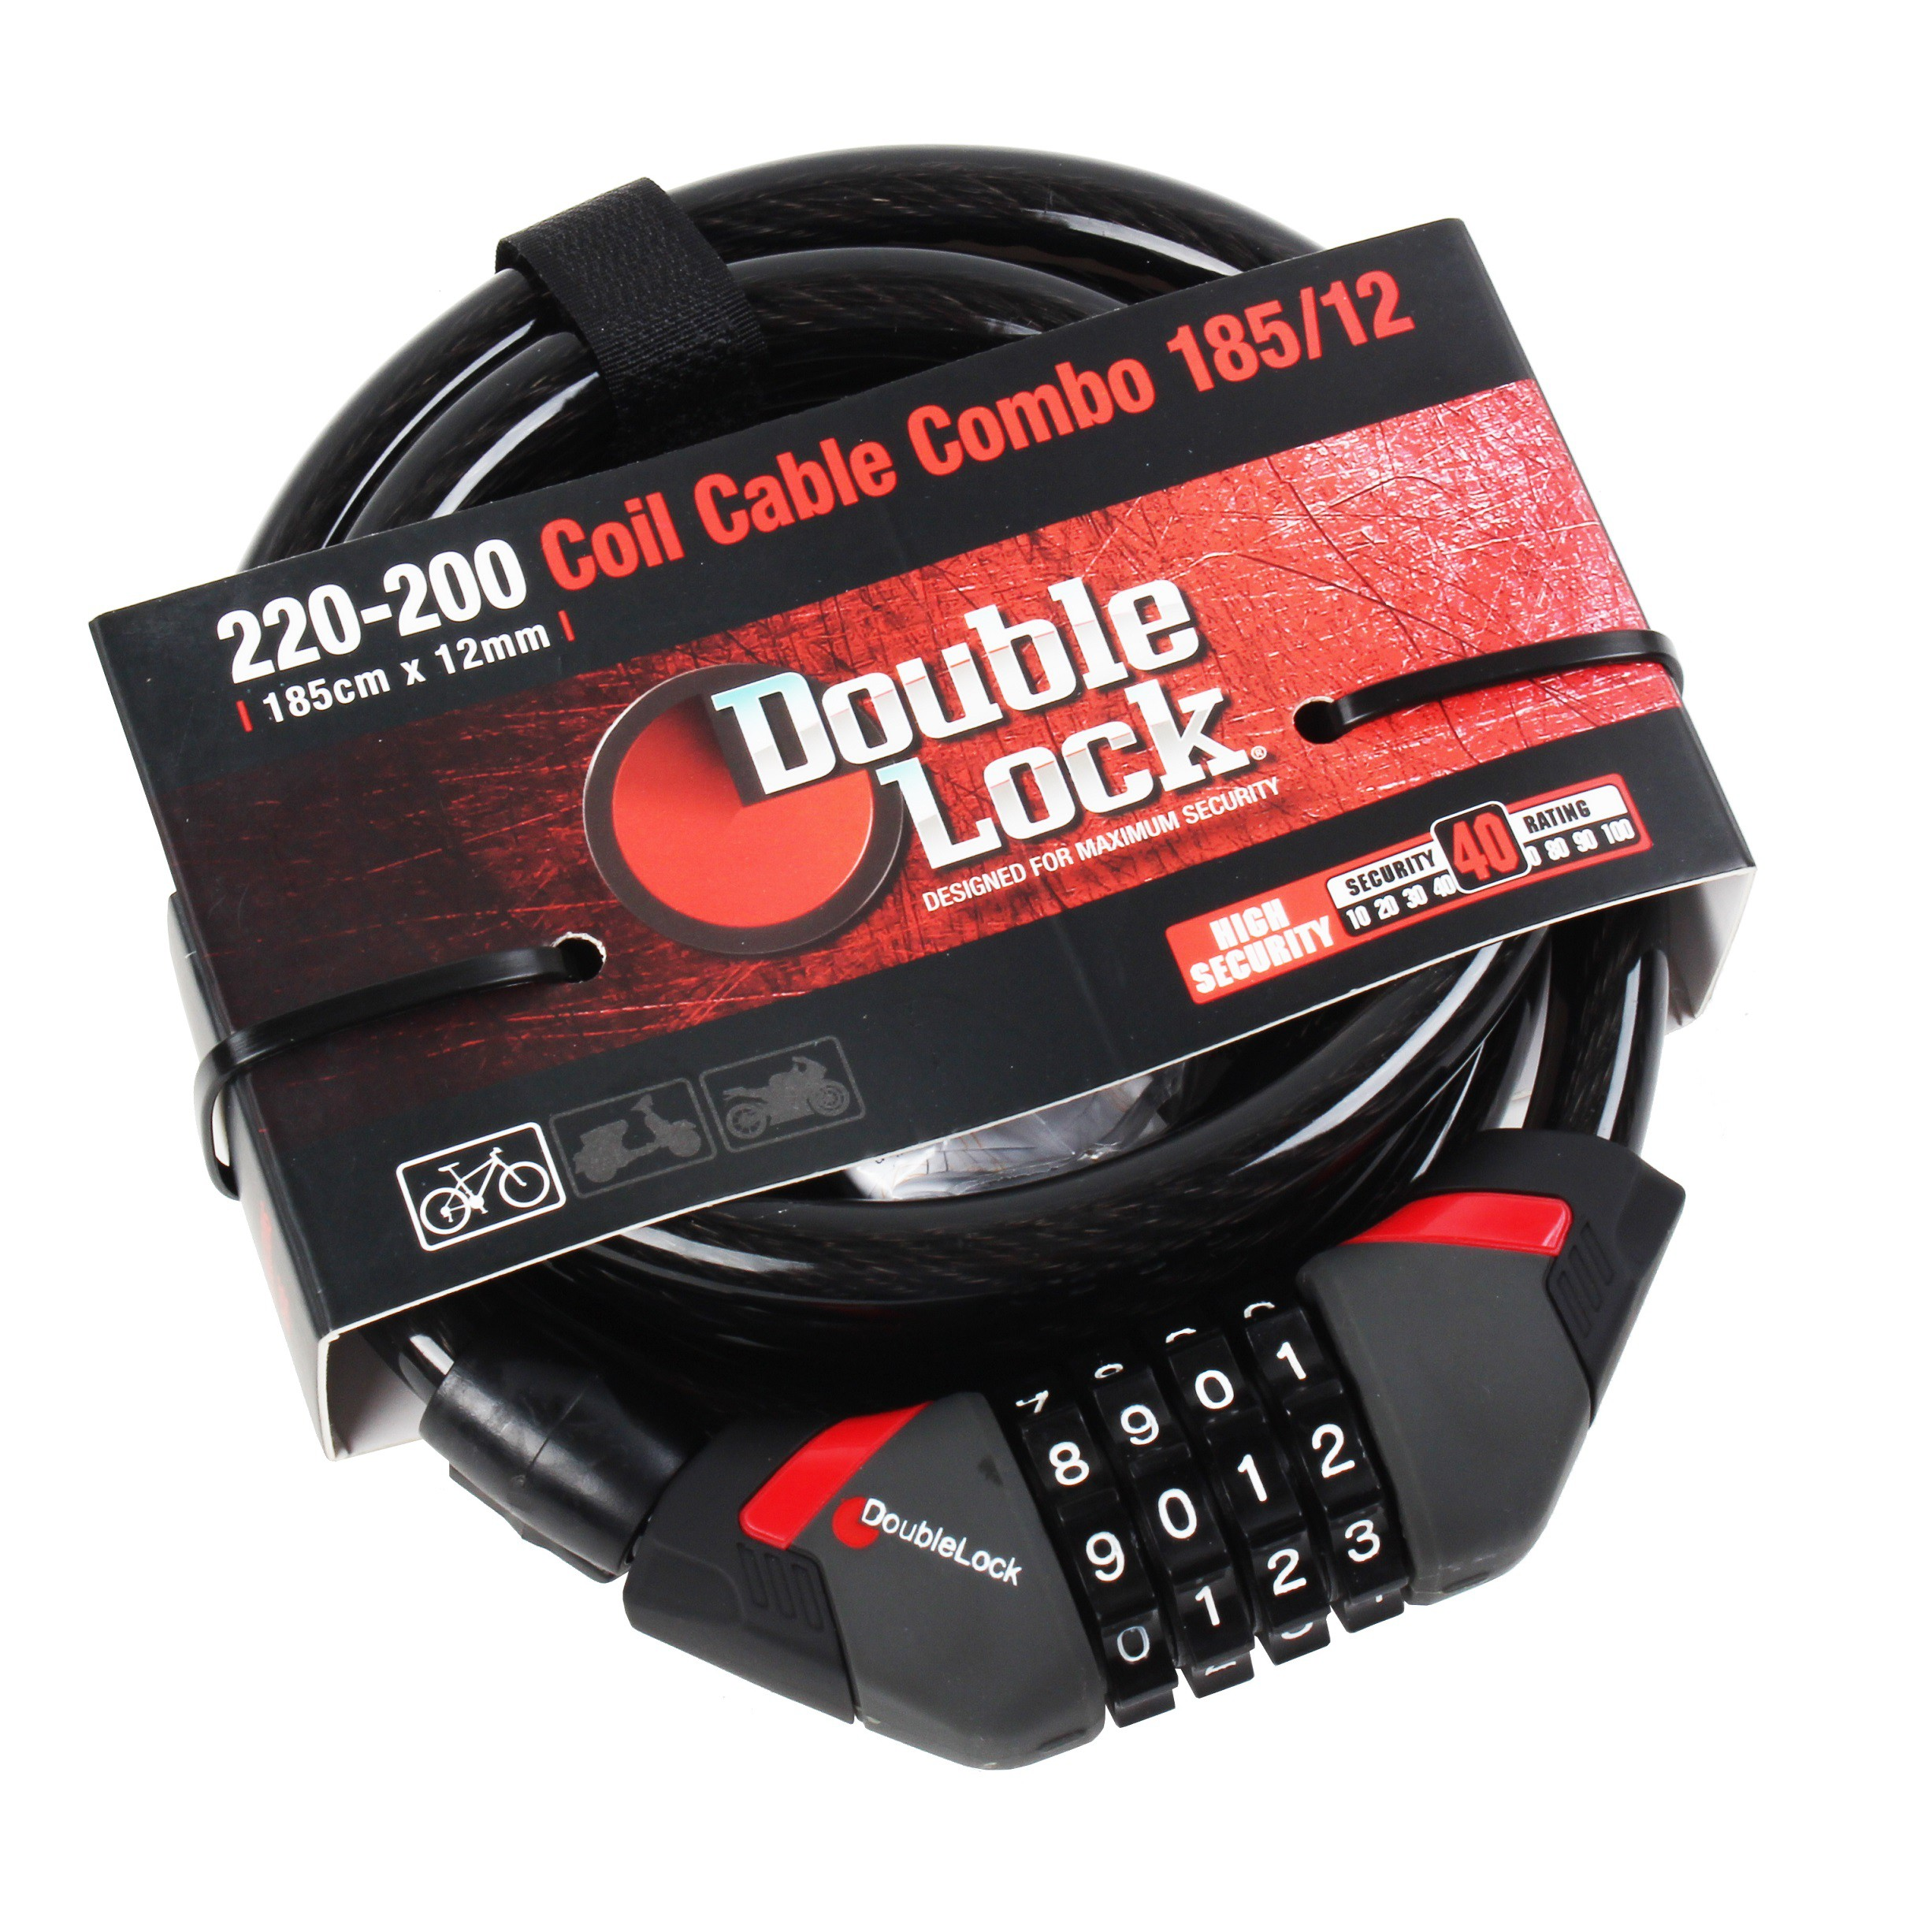 Coil Cable Combo 240/12